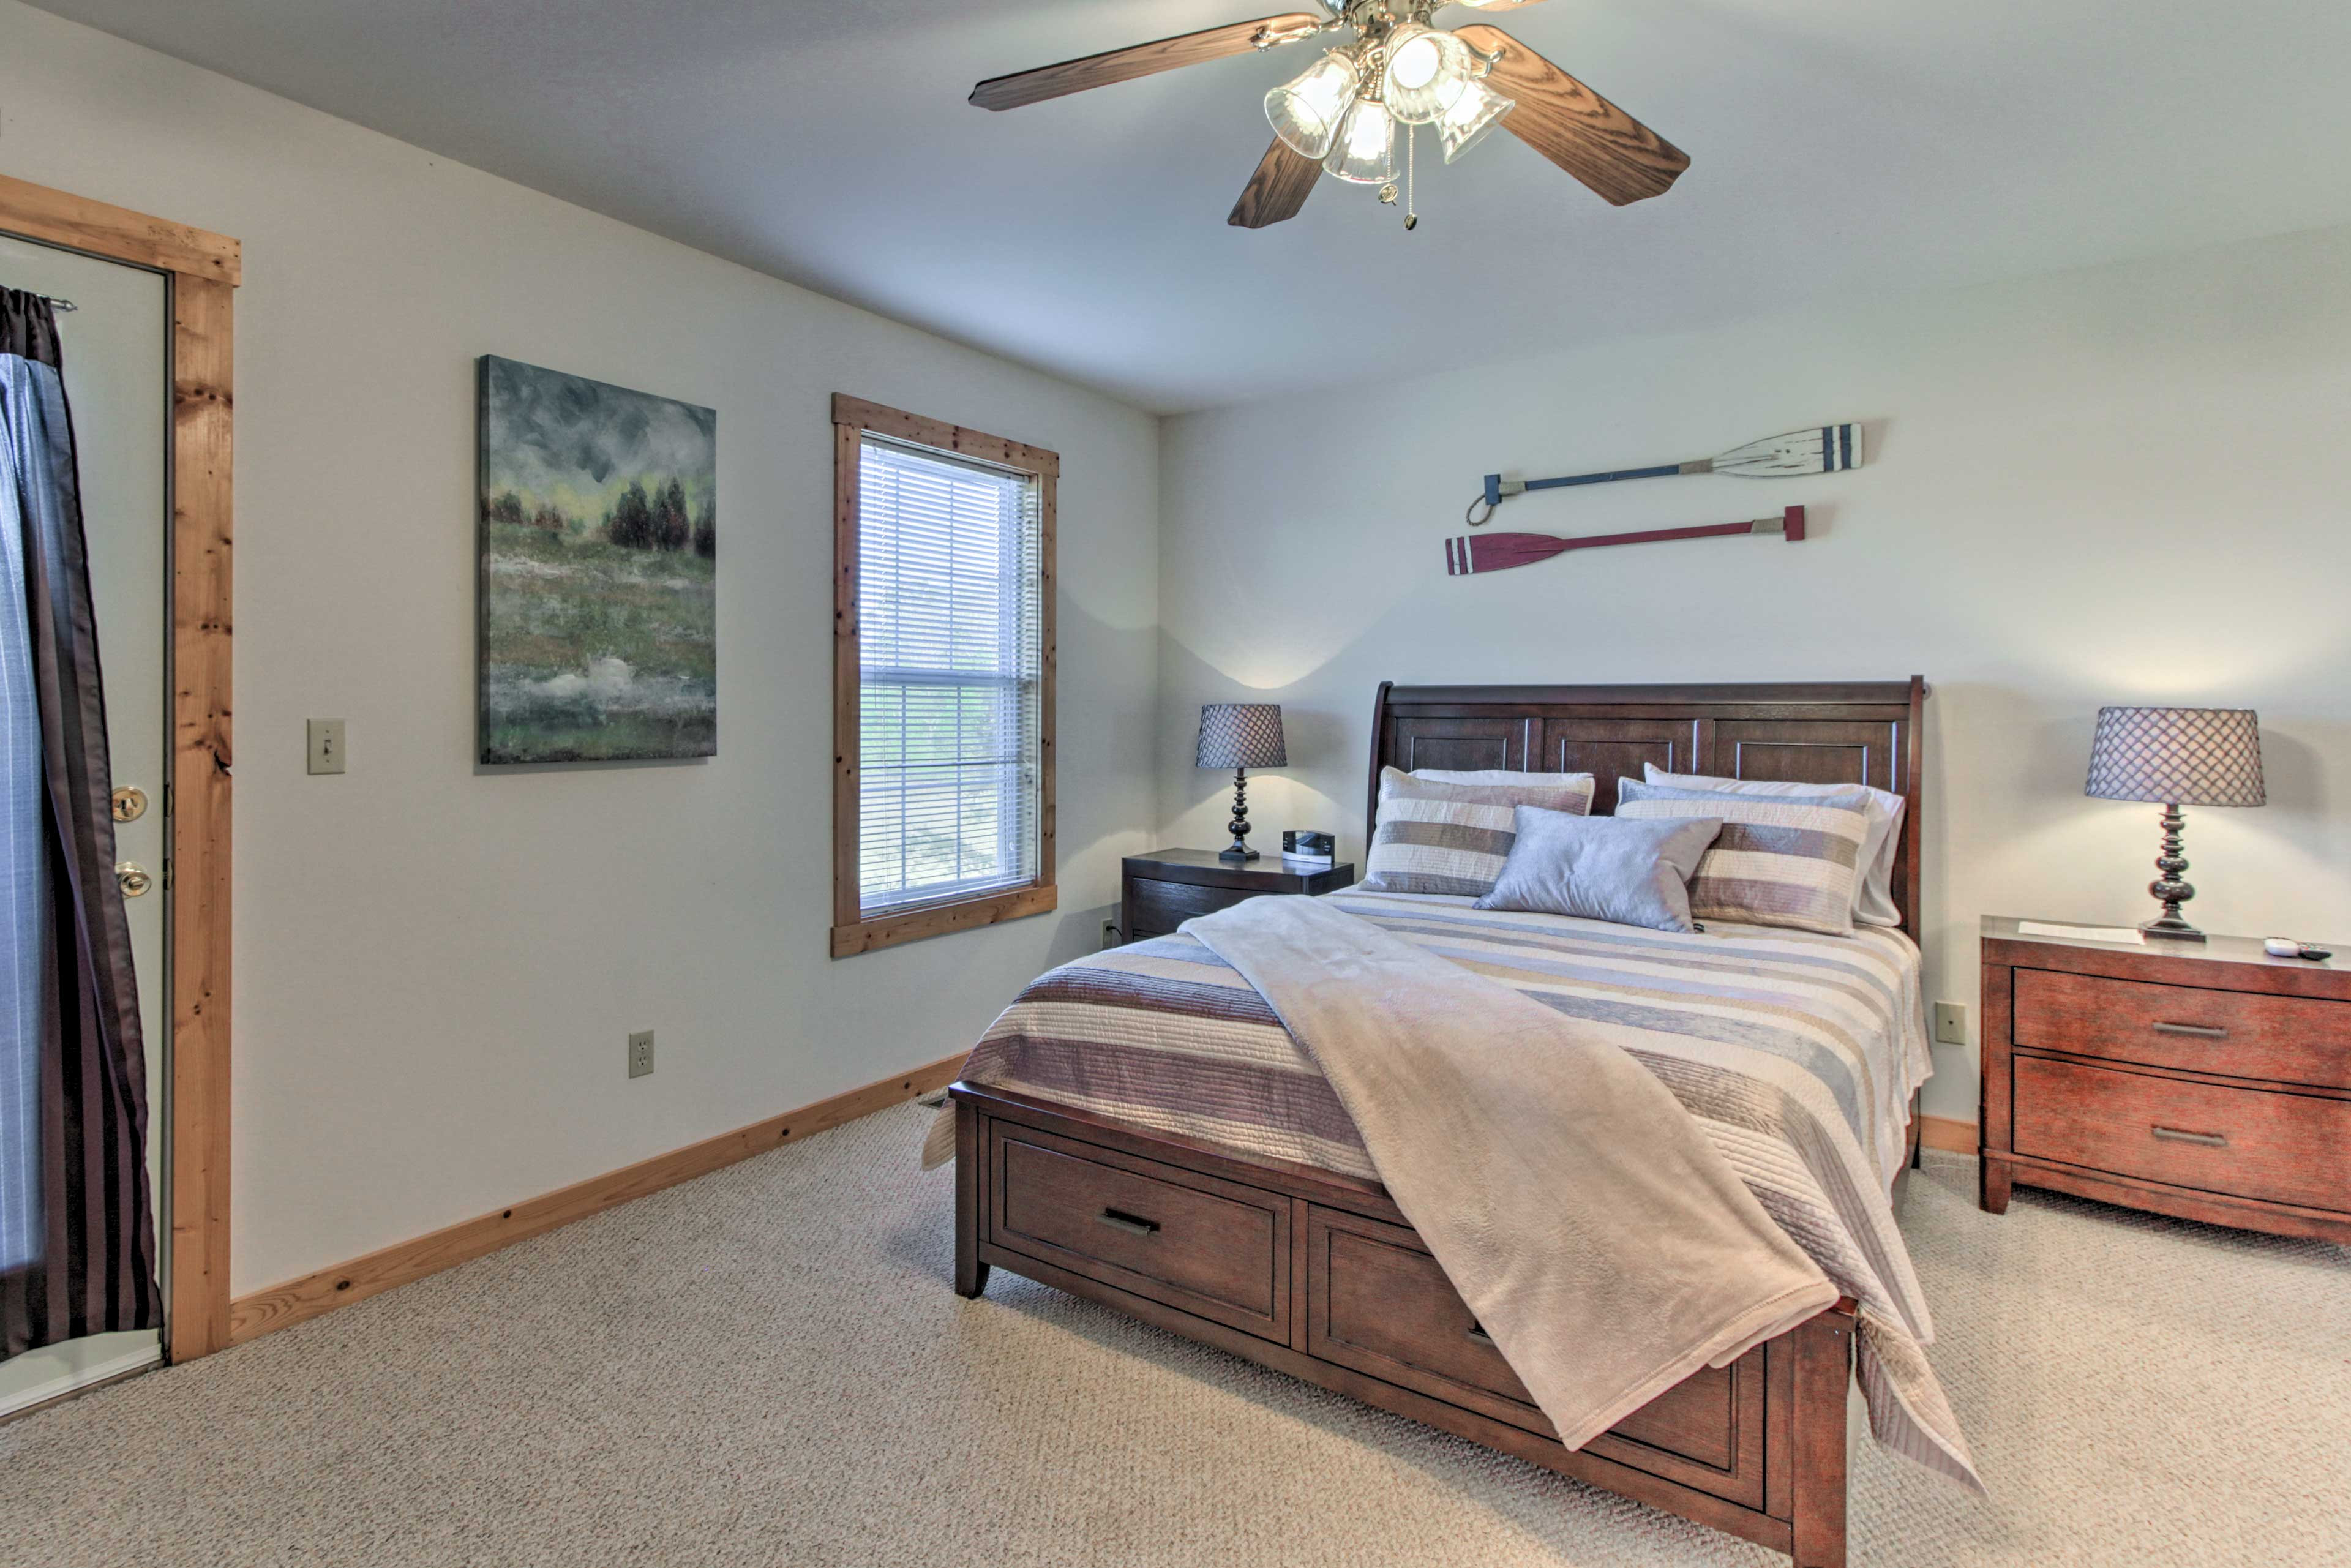 Snuggle up in the master bedroom's queen bed.